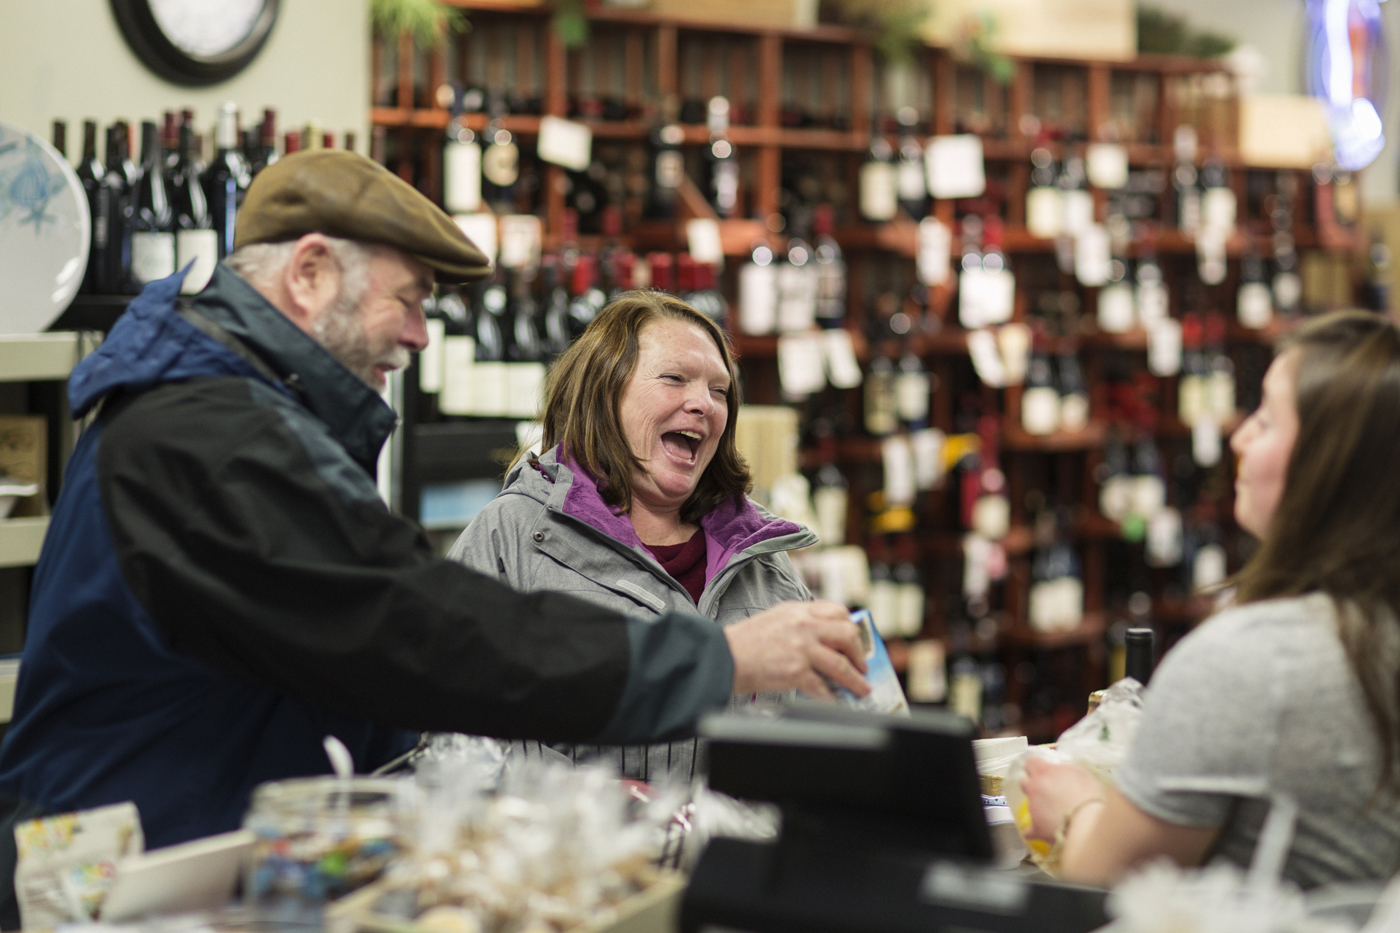 Ramona and her husband chat with a clerk at a liquor store.